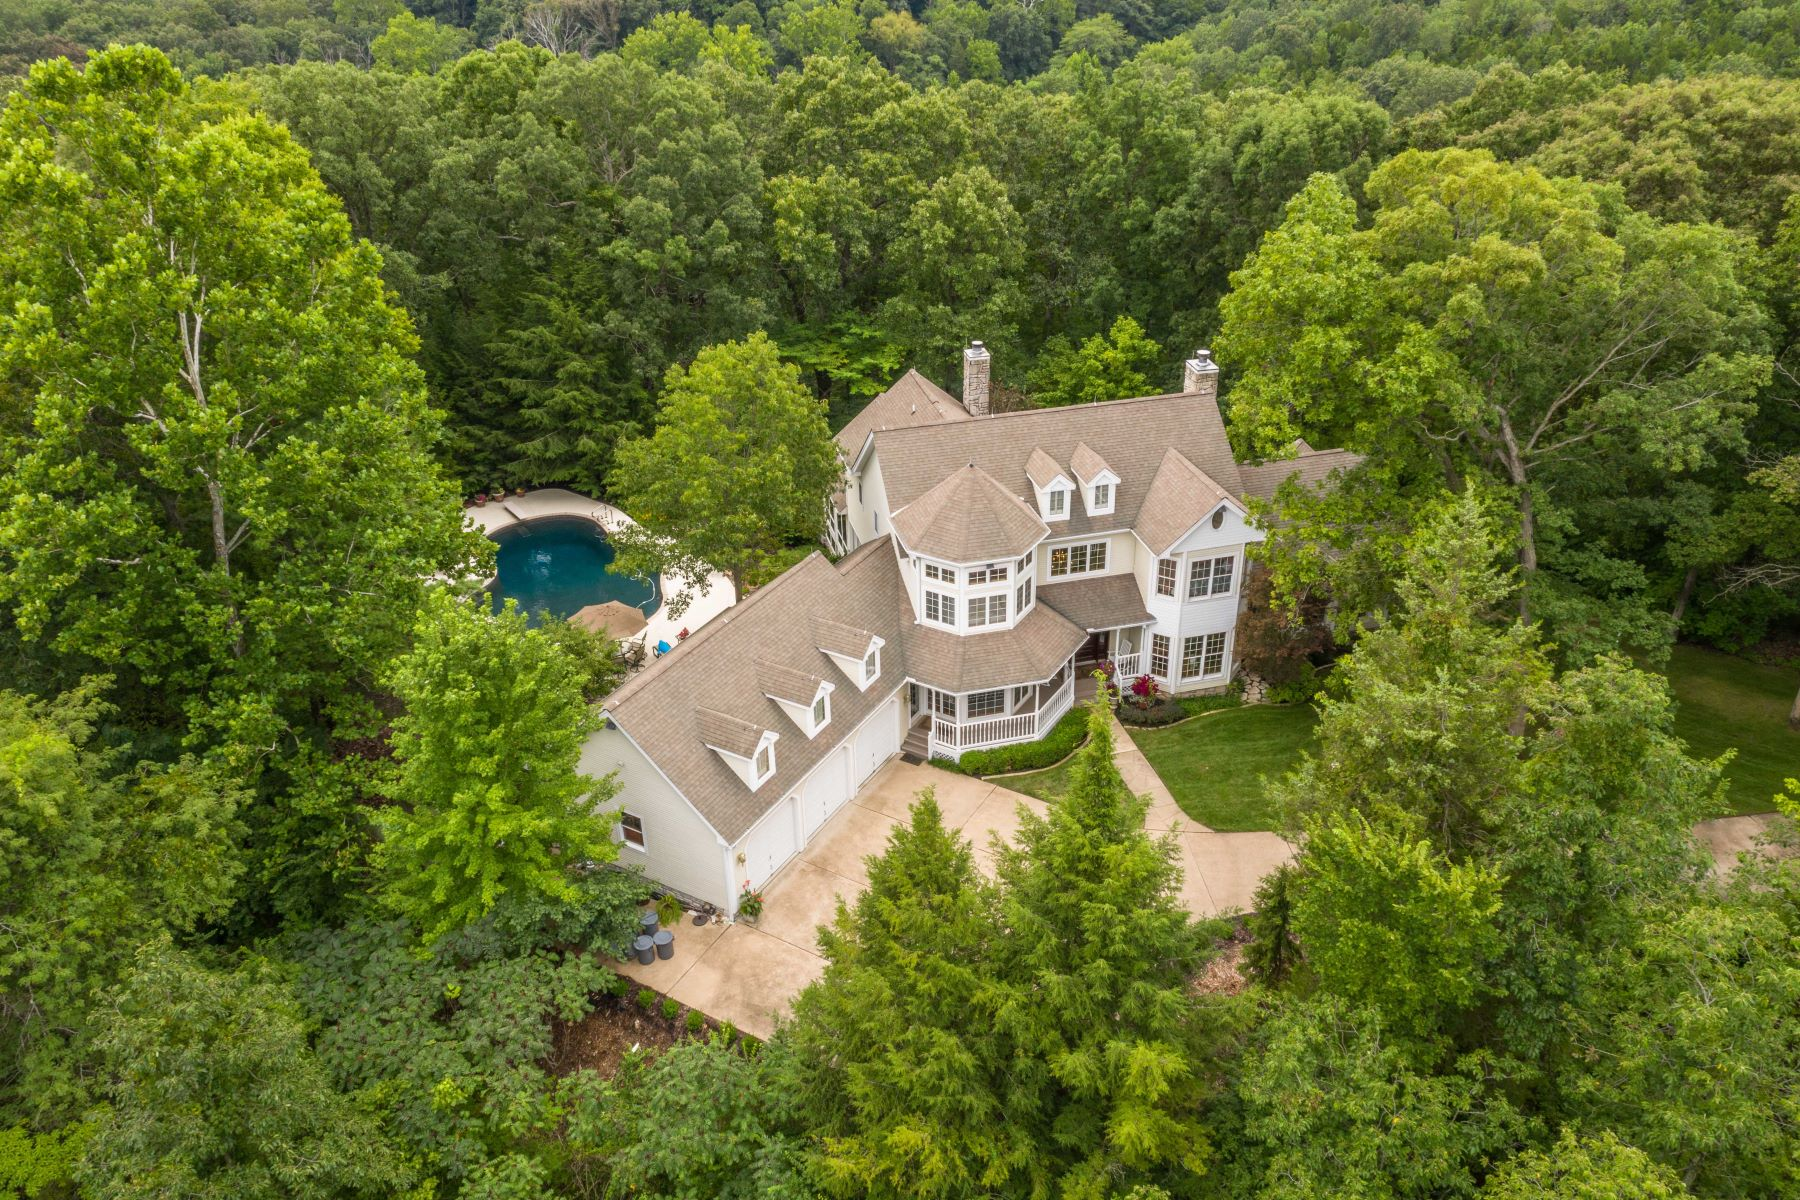 Property for Sale at Exquisite Country Estate Nestled on Over 16 Lush Acres in Wildwood 2525 Ossenfort Road Glencoe, Missouri 63038 United States